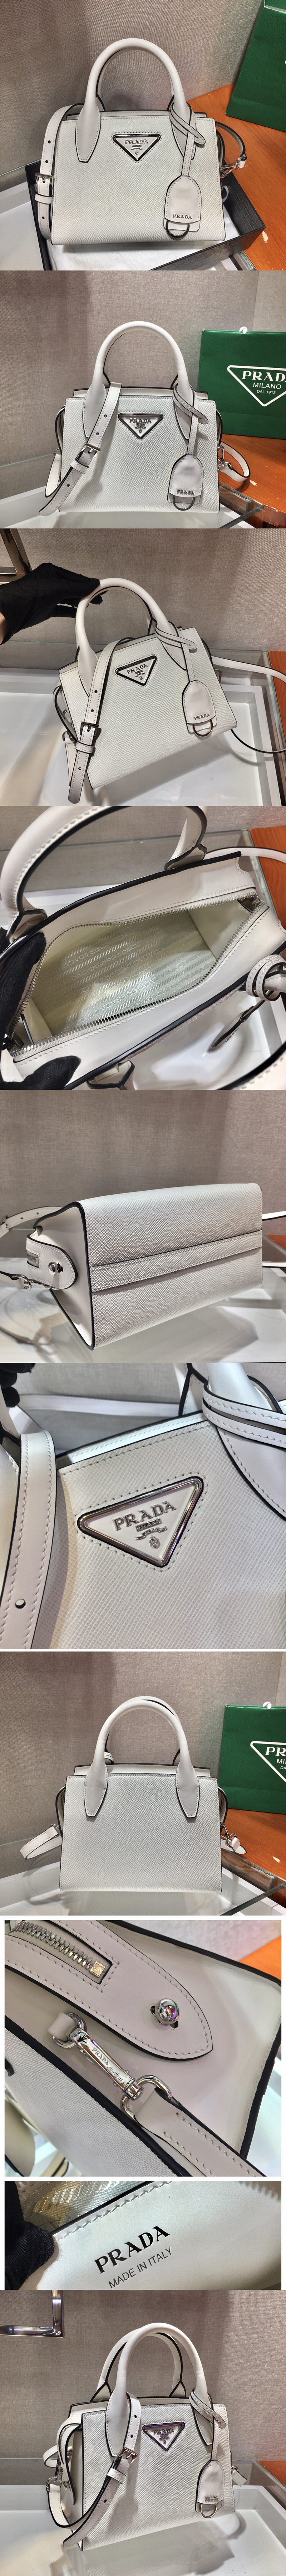 Replica Prada 1BA269 Saffiano leather handbag in White Saffiano leather